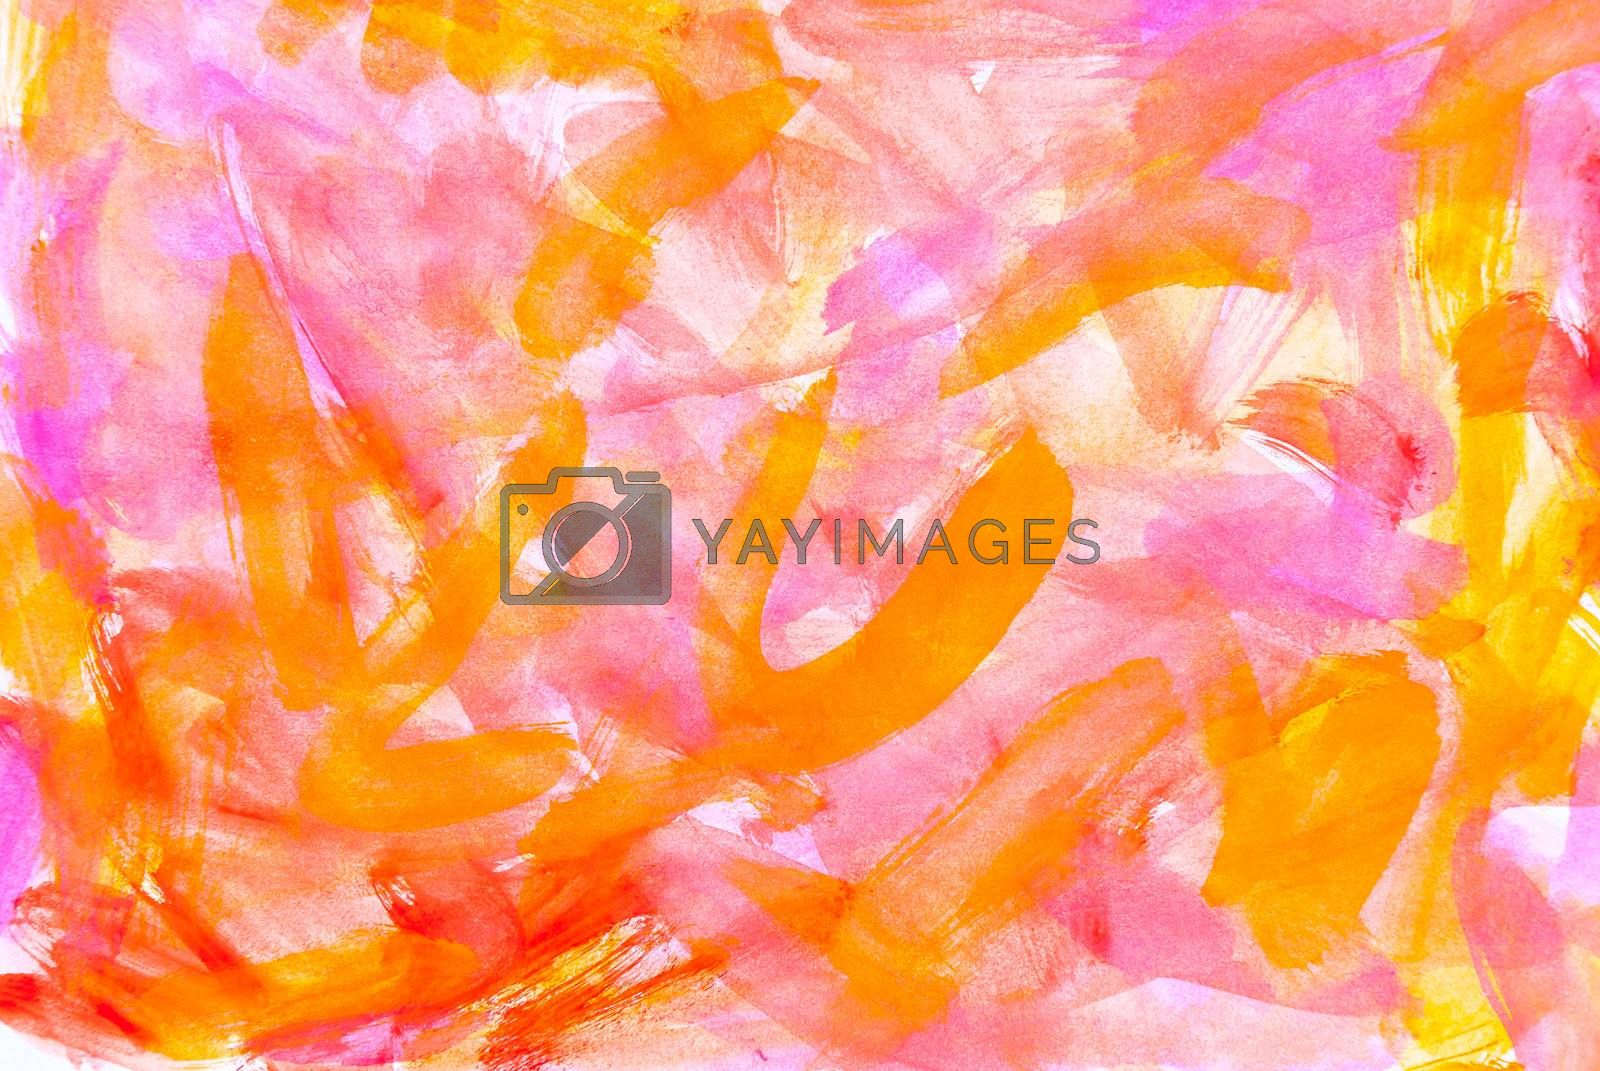 Paints background 8 by firewings